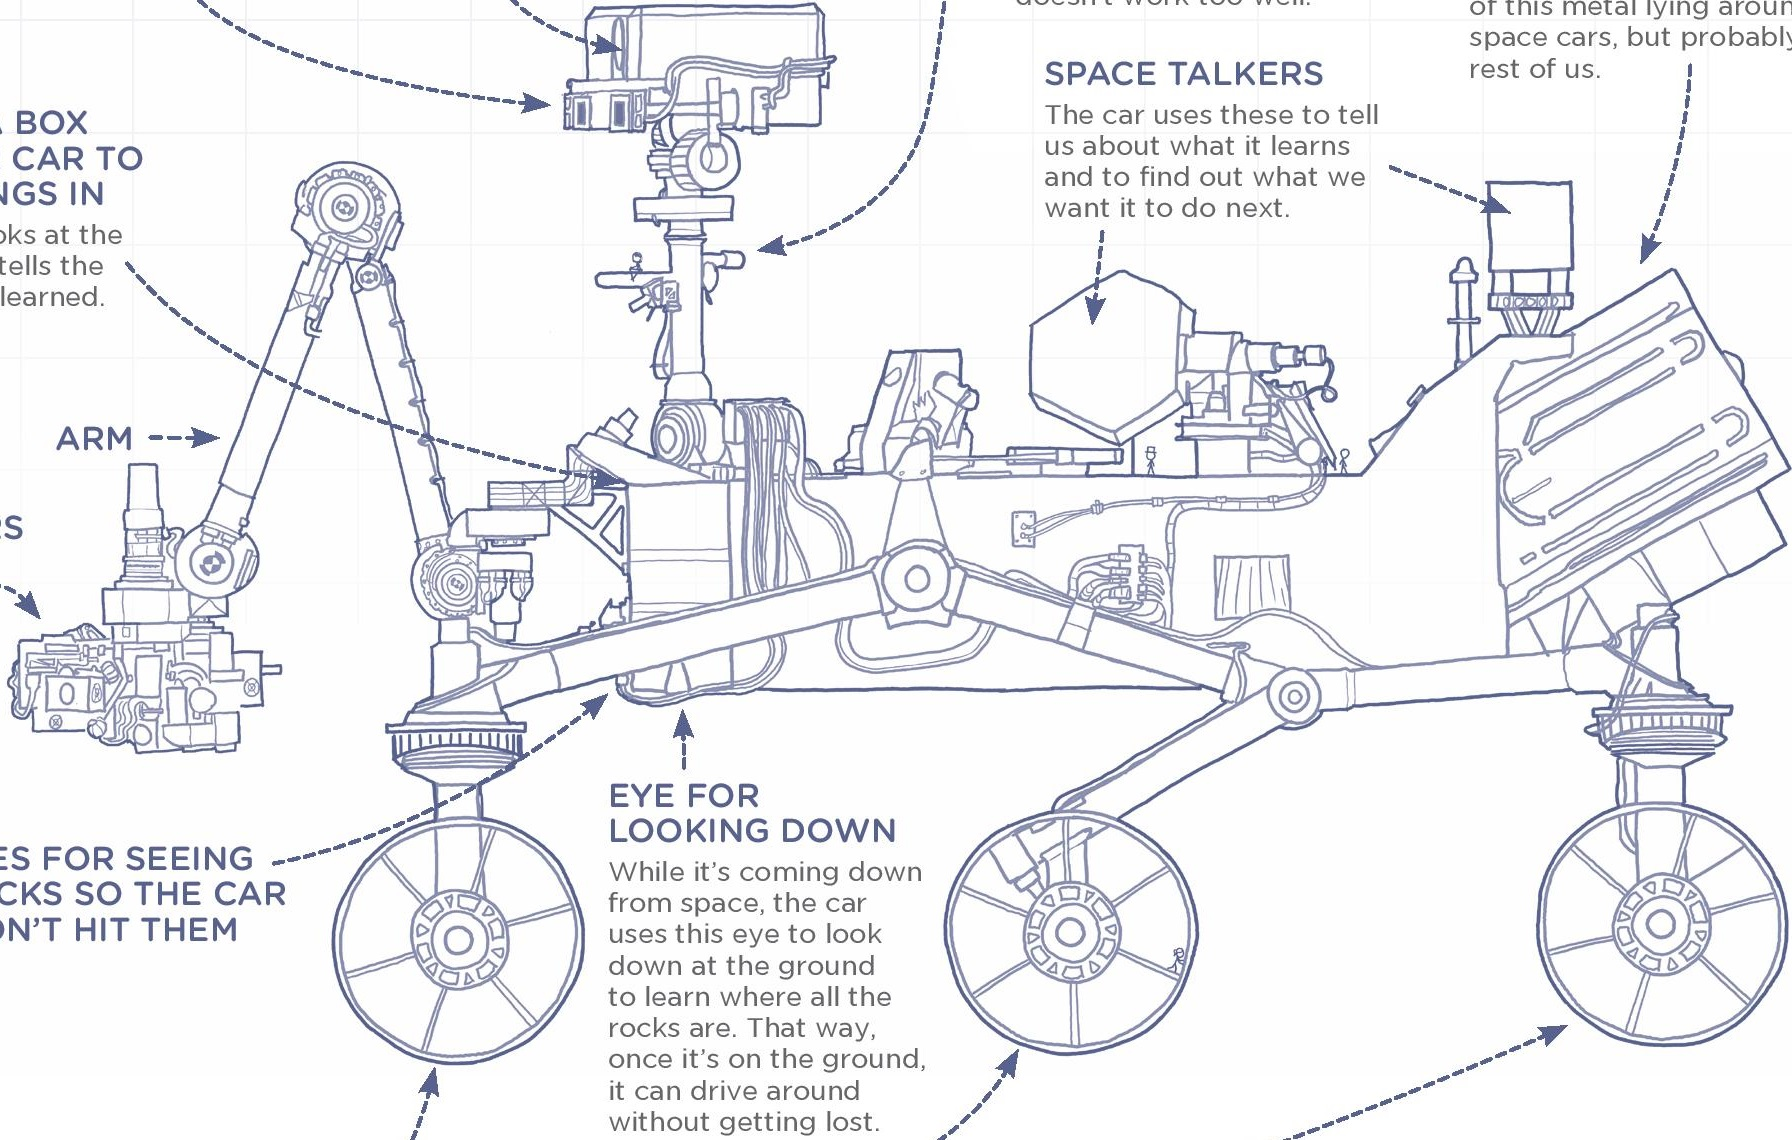 Curiosity Mars Rover Diagram additionally HVAC010 besides Residential Power Meter Wiring together with At Home Sump Pump Installation further Howto toilet rough in. on electrical wiring diagram for mobile home